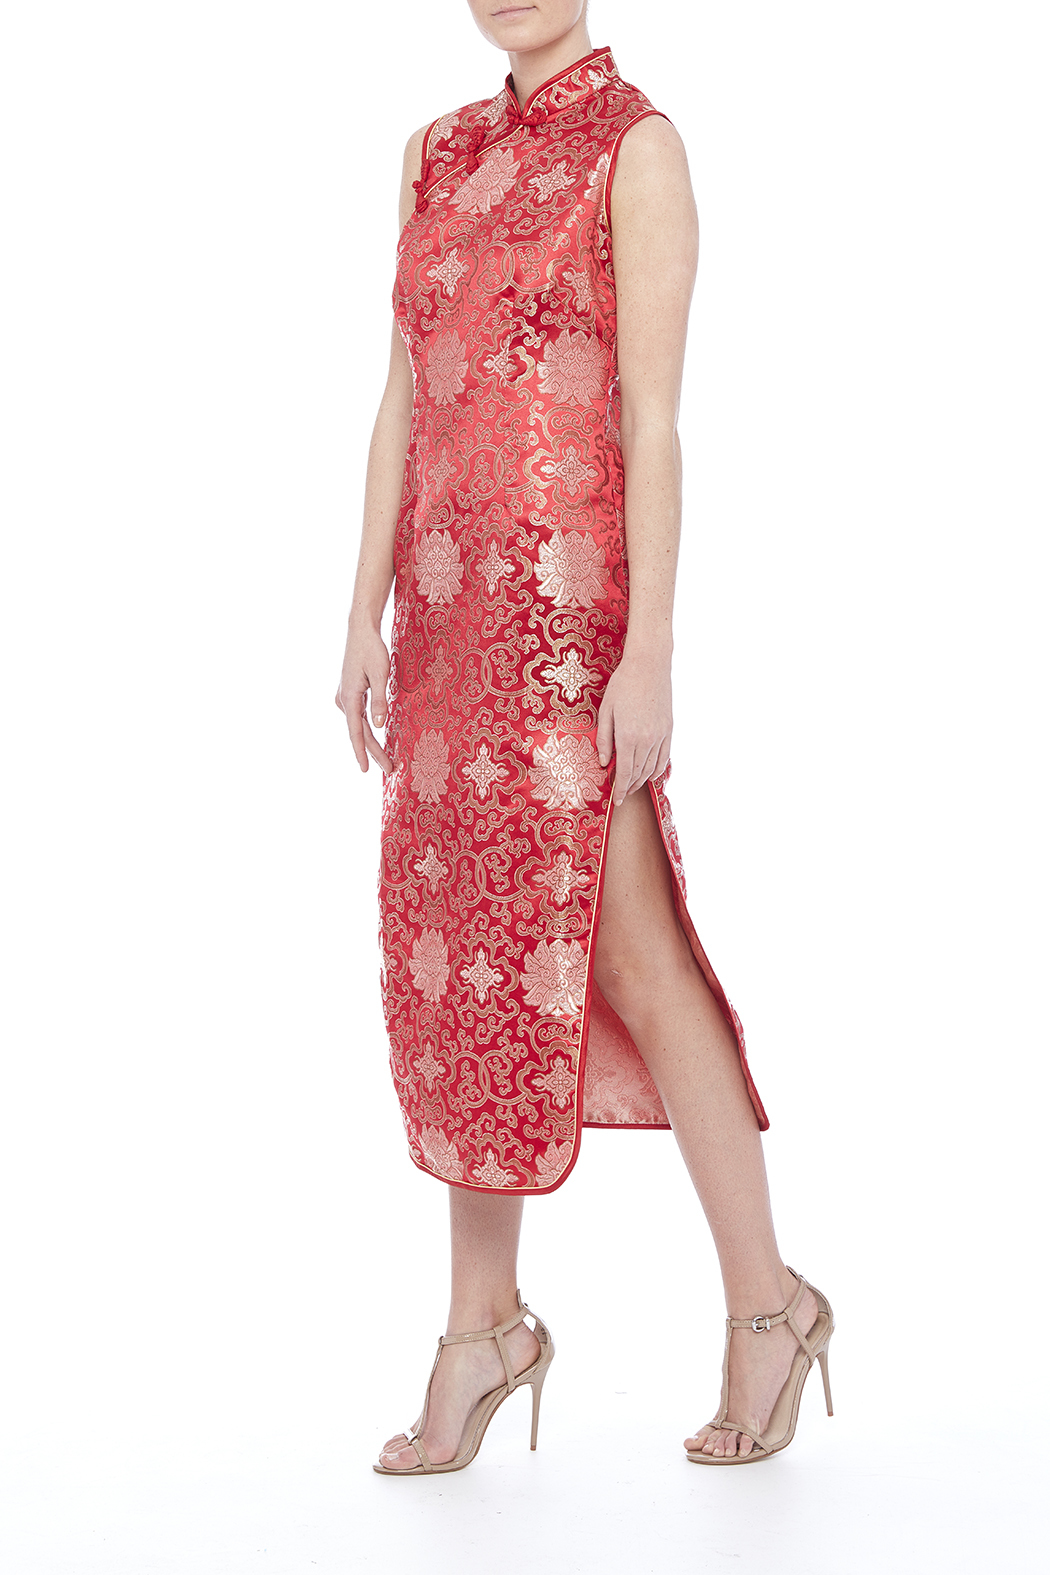 tu-anh boutique Red Cheong Sam - Main Image